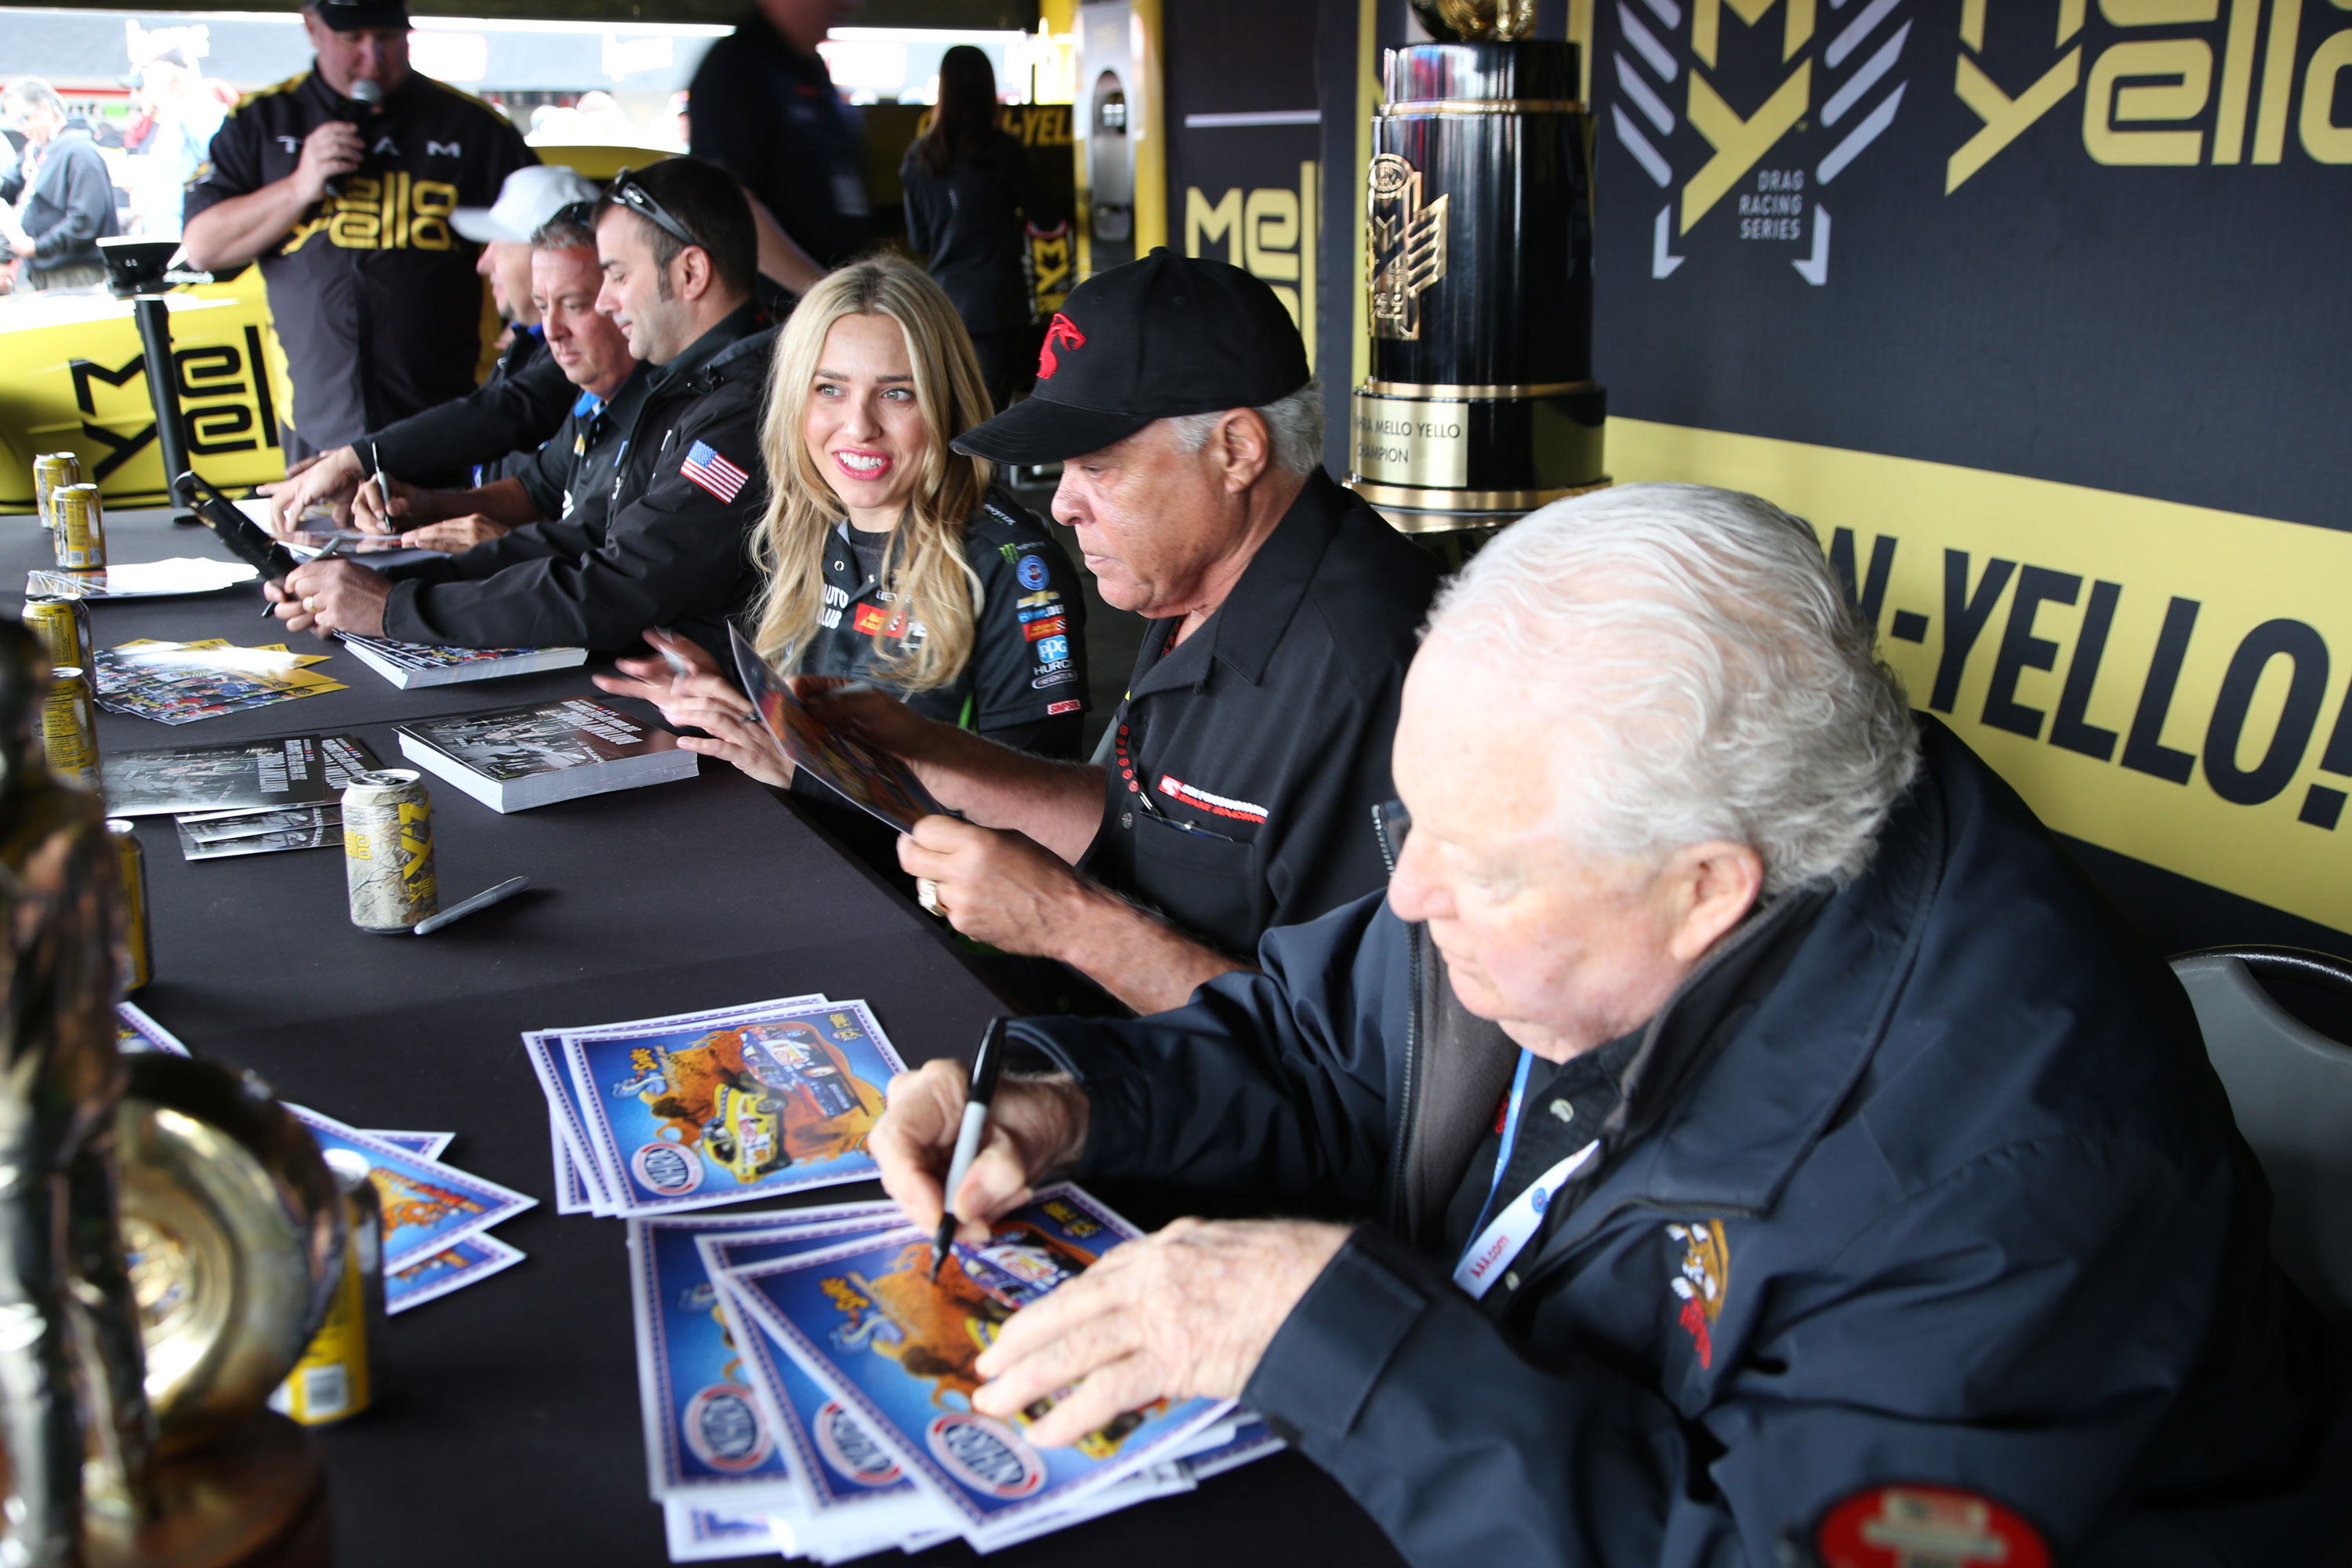 """From back to front: 2017 Funny Car Champ, Robert Hight, 2017 Pro Stock Champ Bo Butner, 2017 Pro Stock Motorcycle Champ Eddie Krawiec, 2017 Top Fuel Dragster Champ Brittany Force, Don """"the Snake"""" Prudhomme, and Tom """"the Mongoose"""" McEwen."""